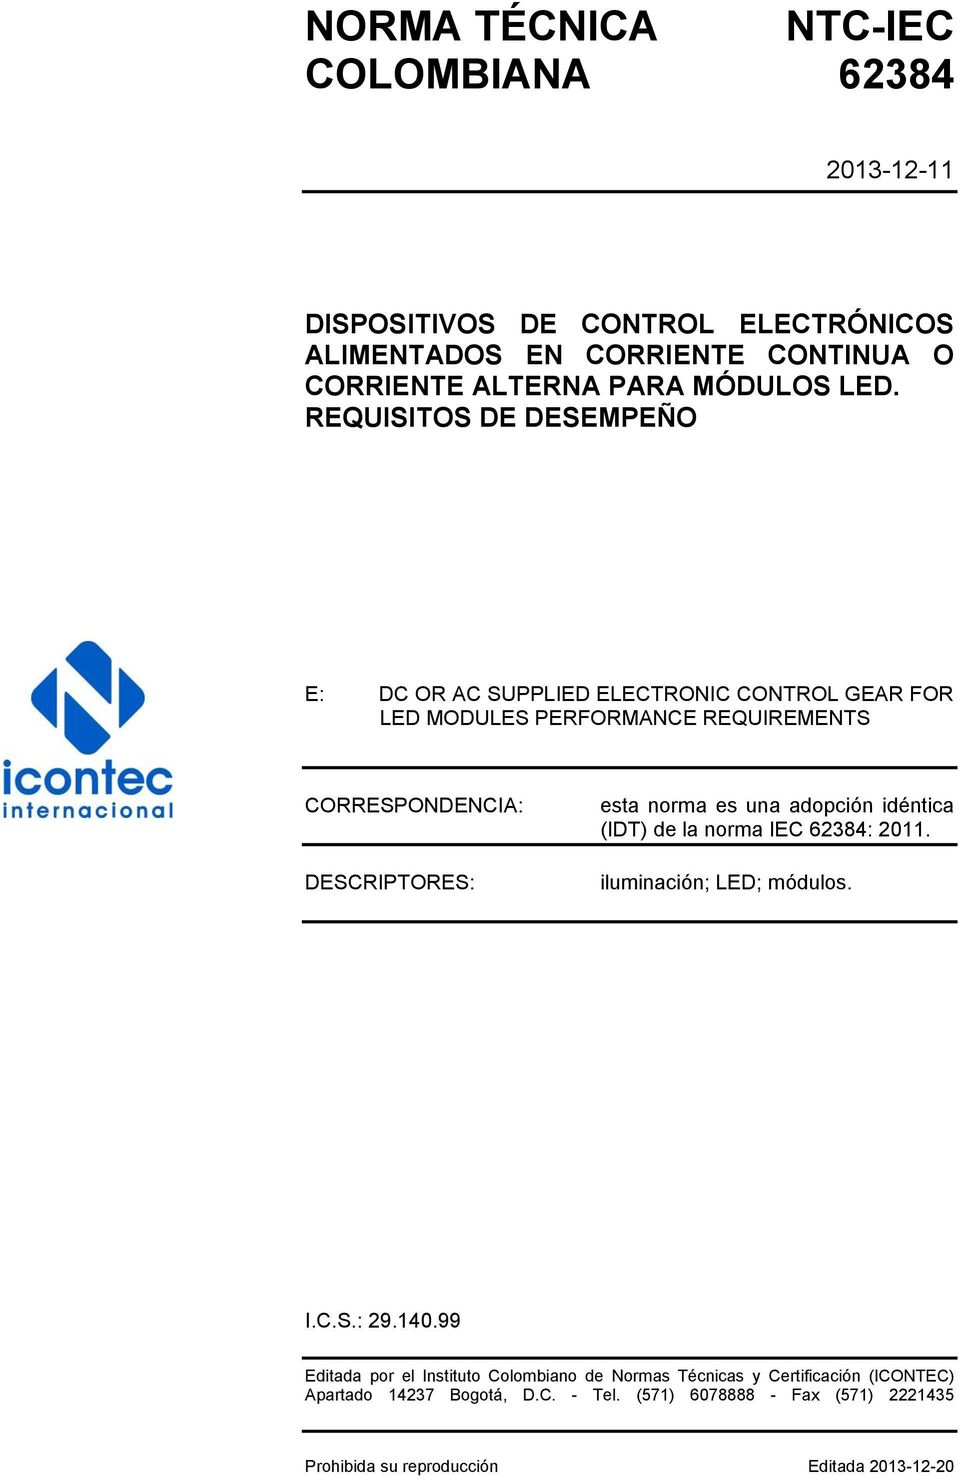 REQUISITOS DE DESEMPEÑO E: DC OR AC SUPPLIED ELECTRONIC CONTROL GEAR FOR LED MODULES PERFORMANCE REQUIREMENTS CORRESPONDENCIA: DESCRIPTORES: esta norma